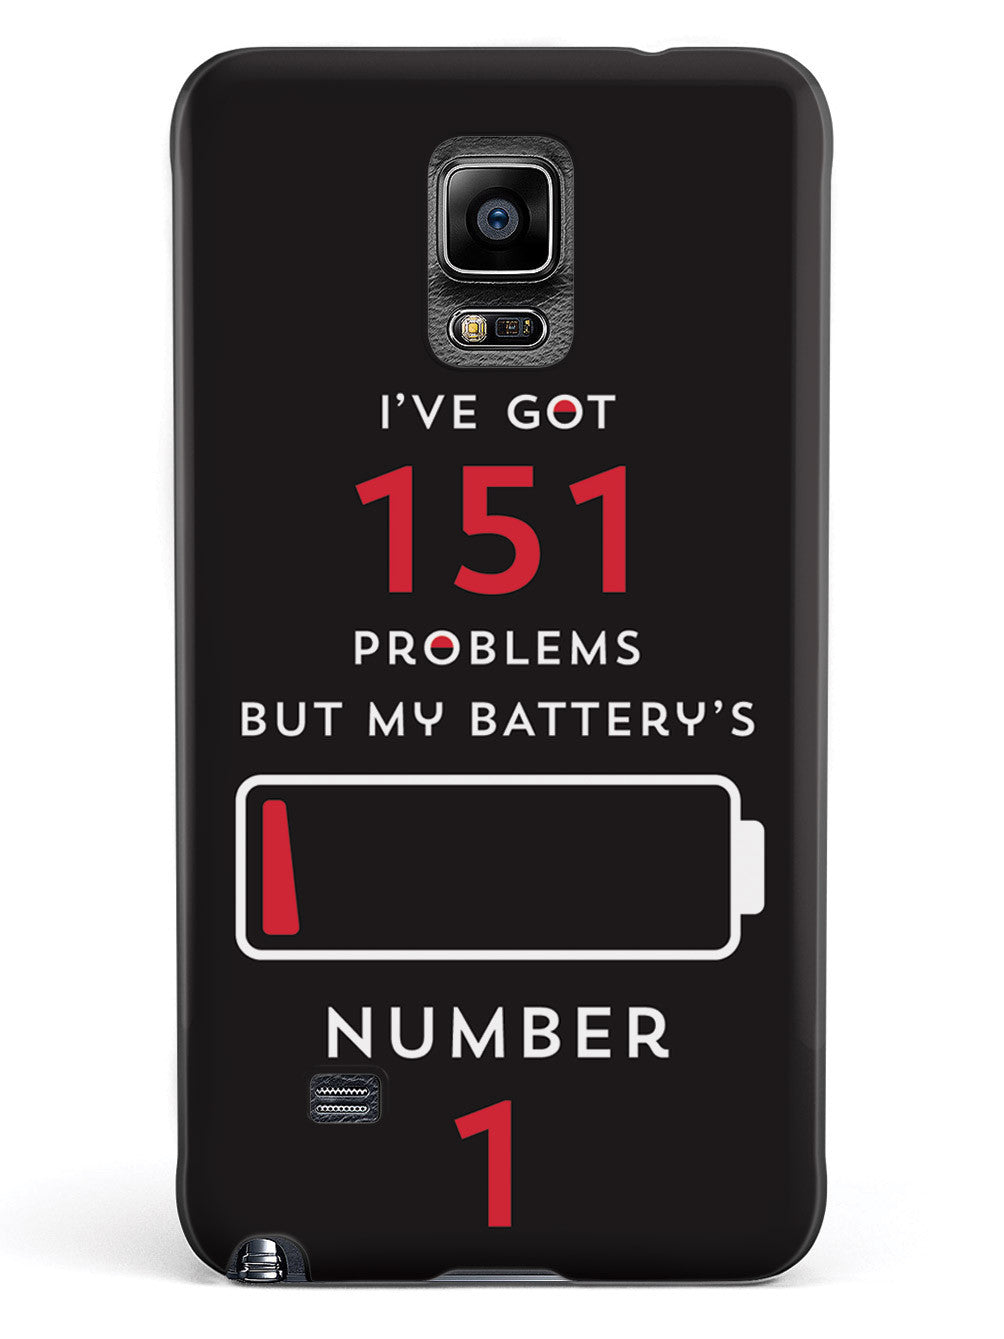 I've Got 151 Problems - Black Case